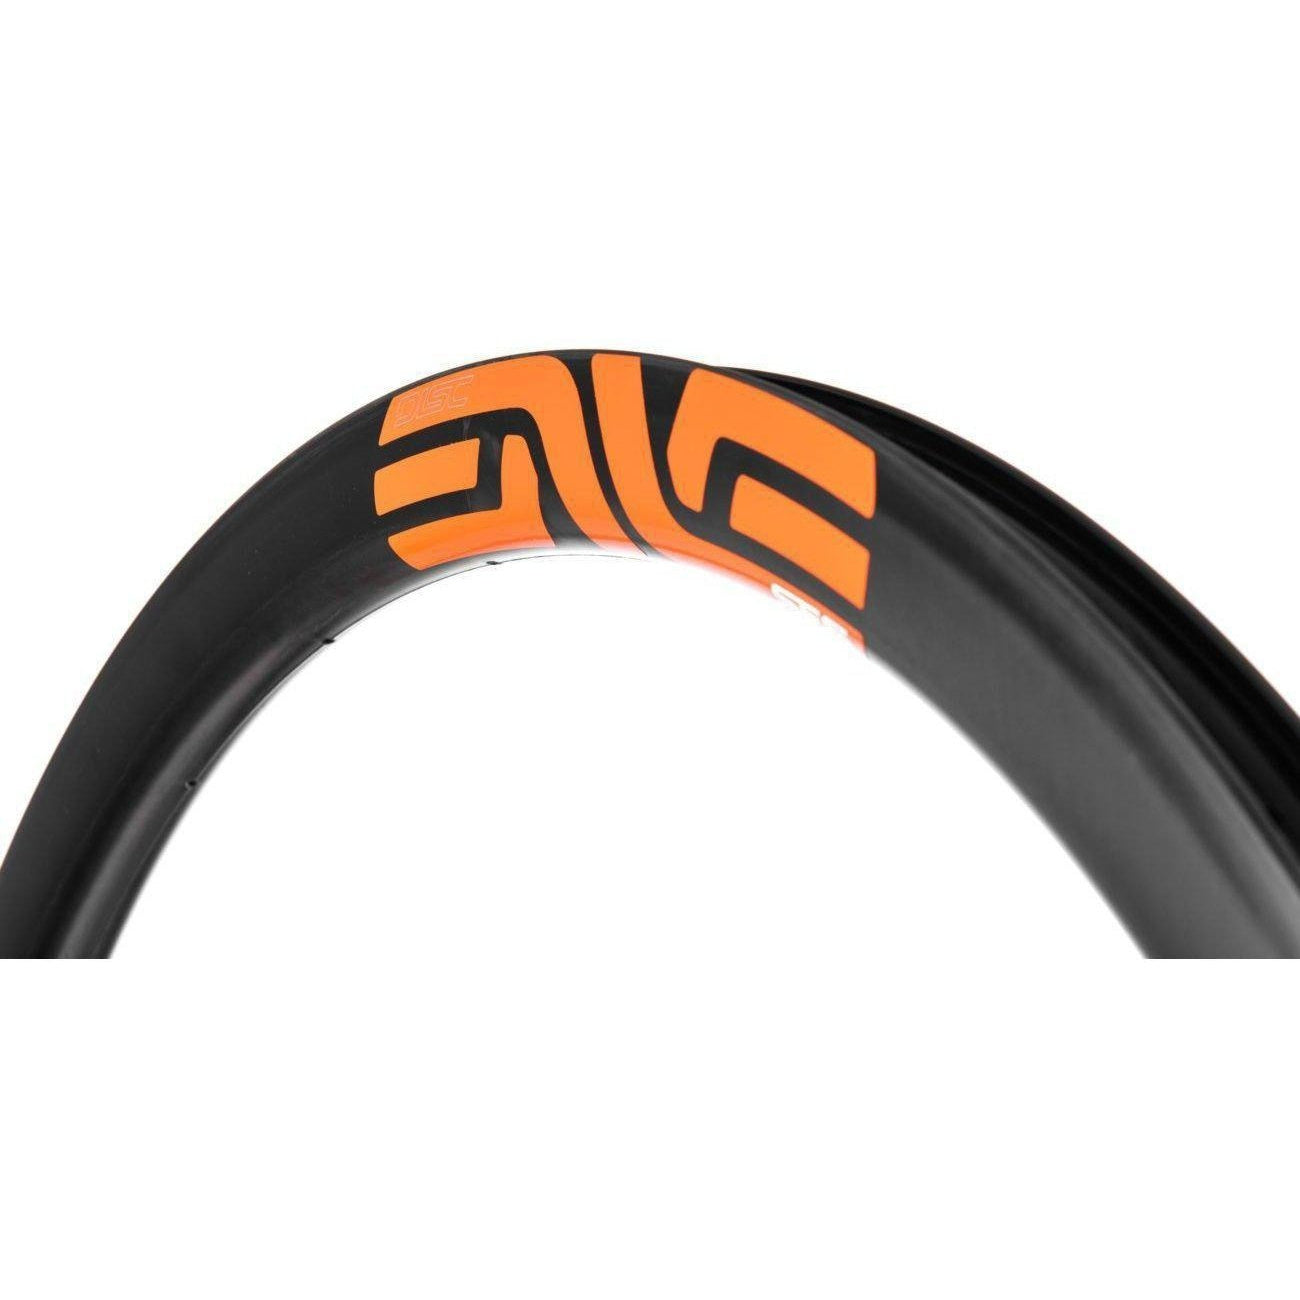 ENVE-ENVE SES 3.4 Disc Decals-SES 3.4 Disc-Front (38mm)-Orange-EN70001000749-saddleback-elite-performance-cycling